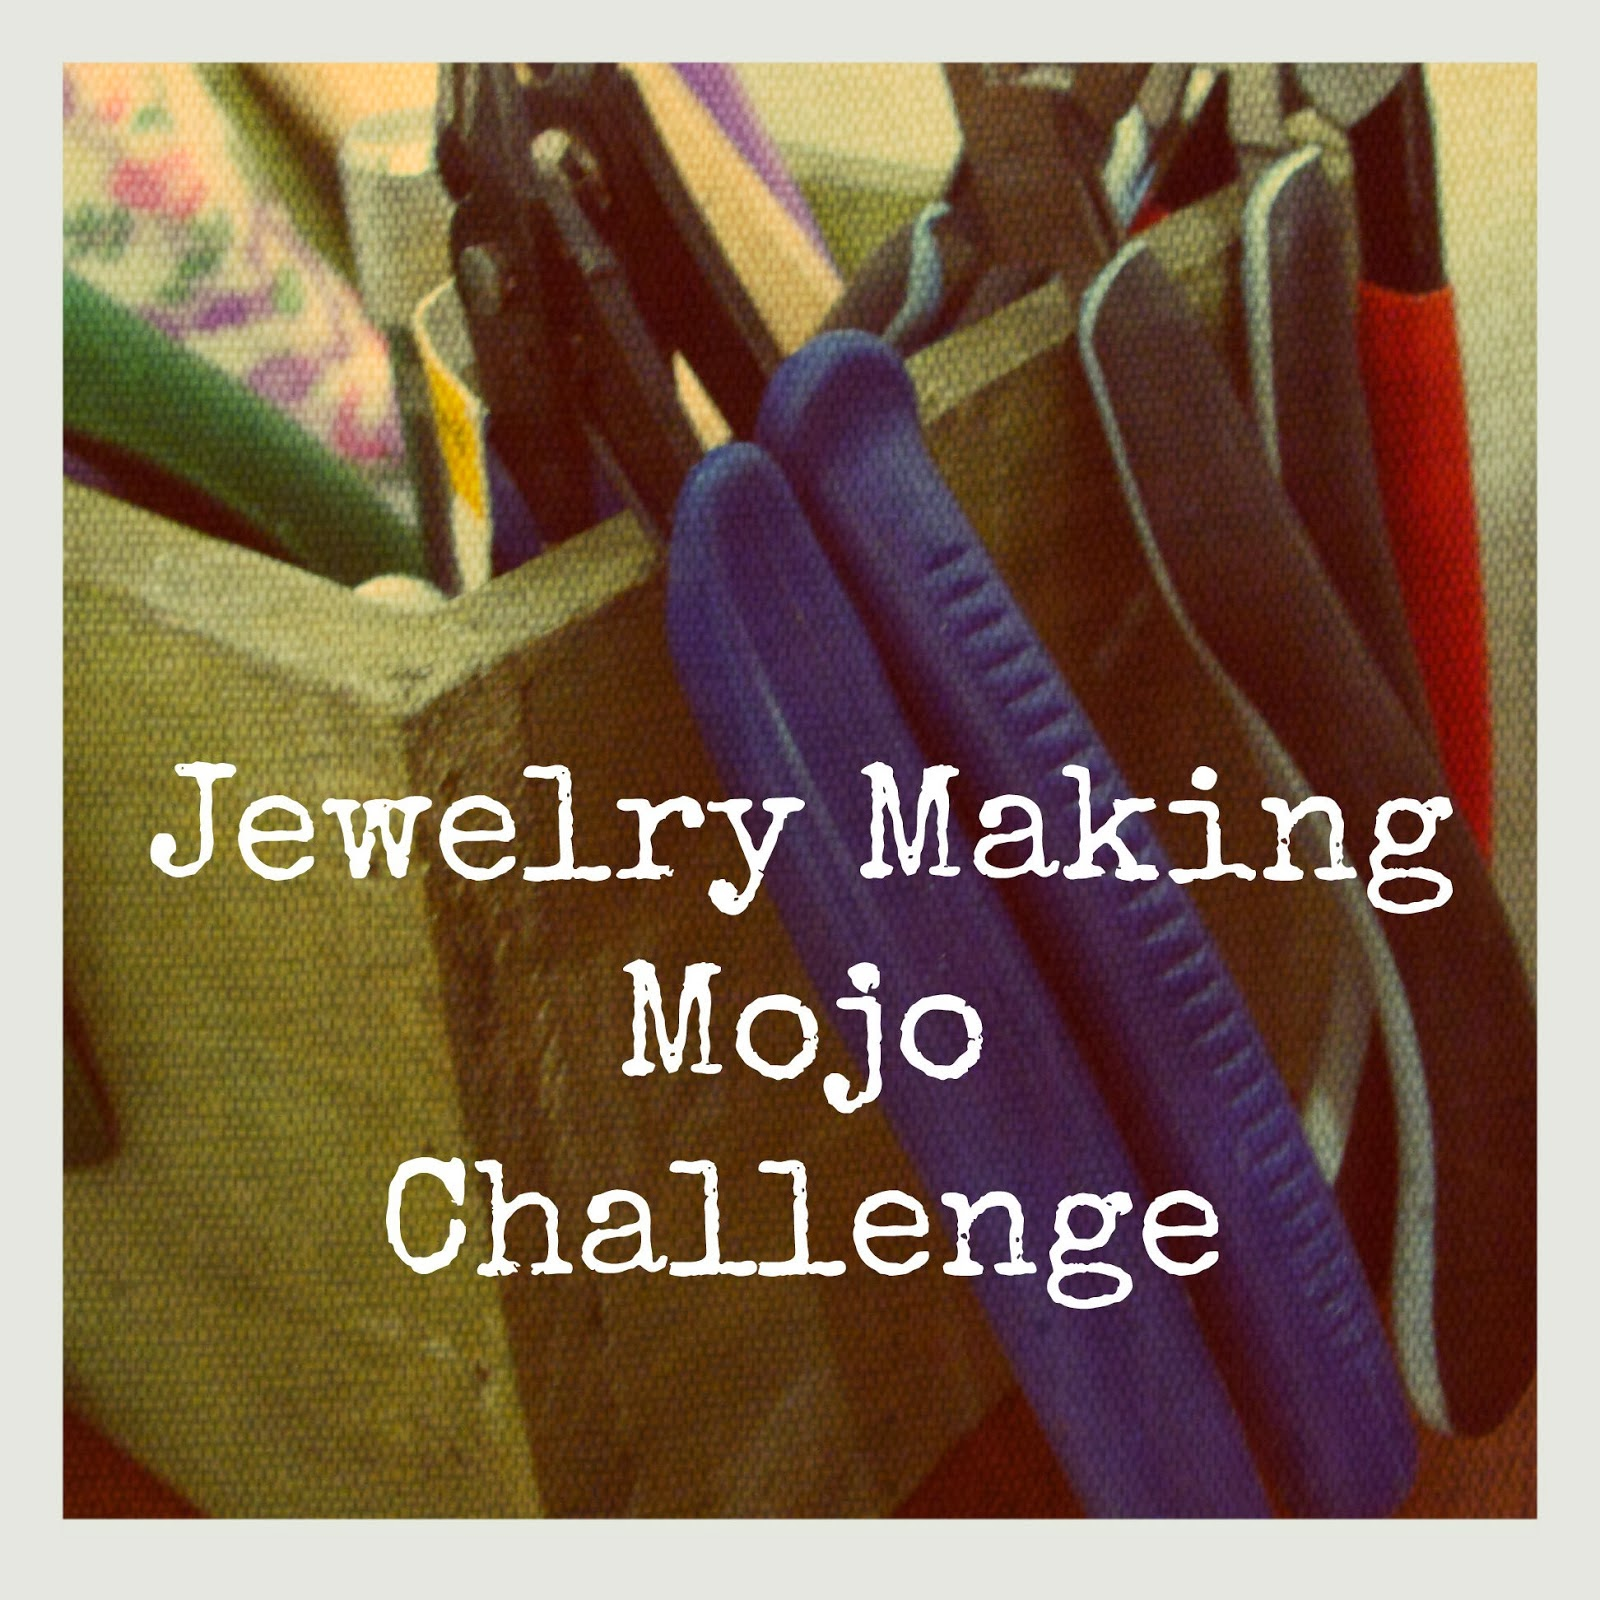 Jewelry Making Mojo Challenge